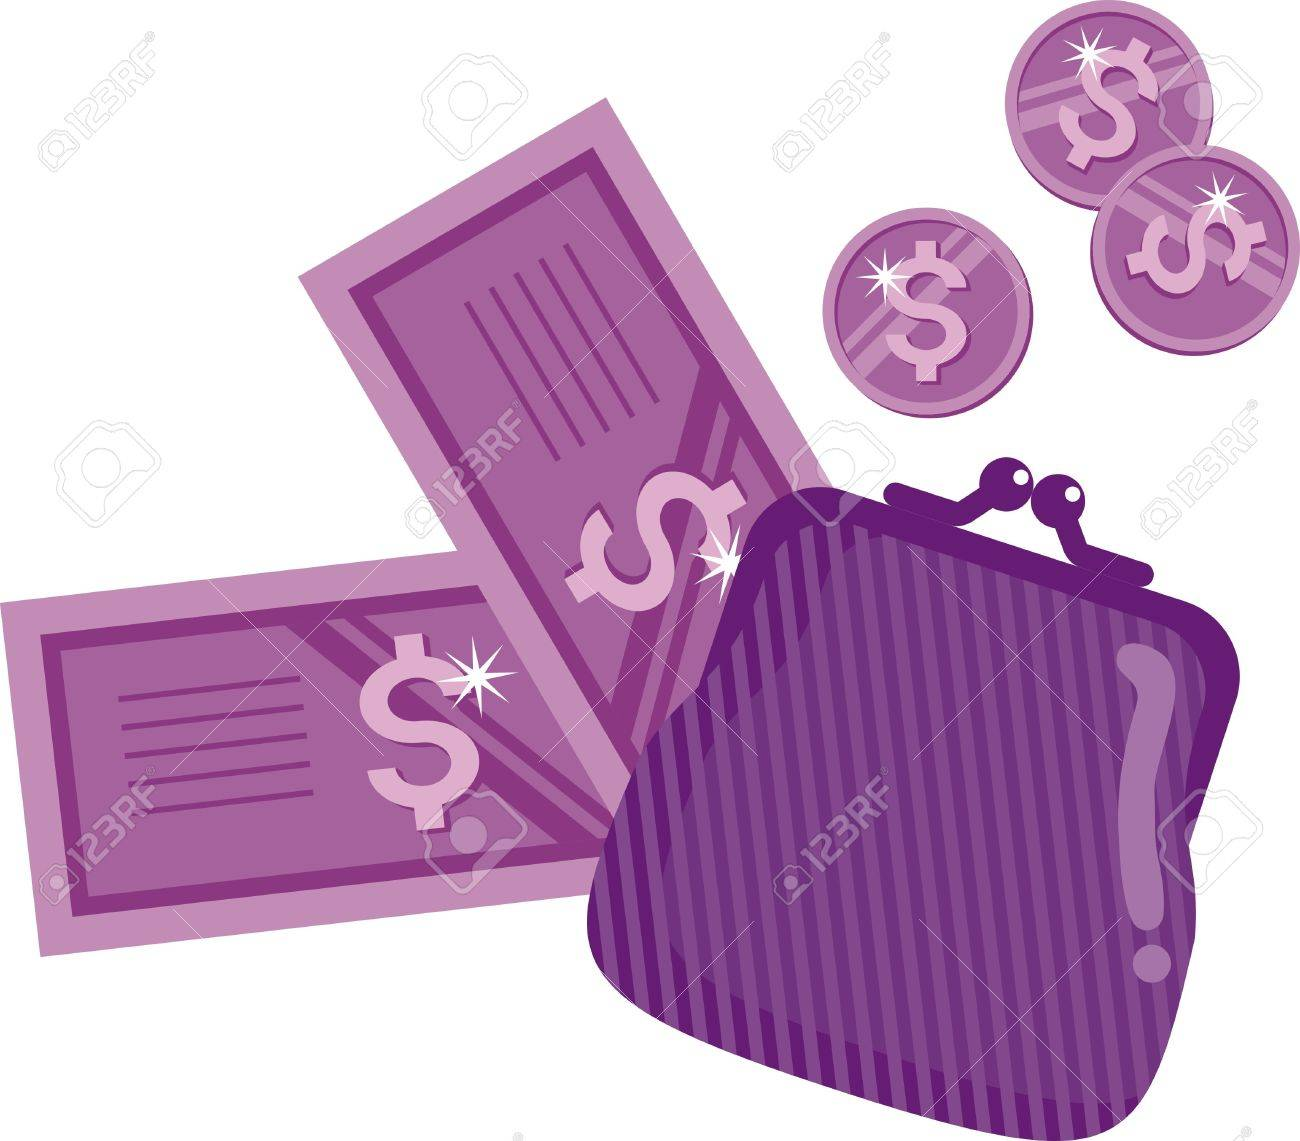 wallet - a symbol of money, wealth, prosperity Stock Vector - 11494880